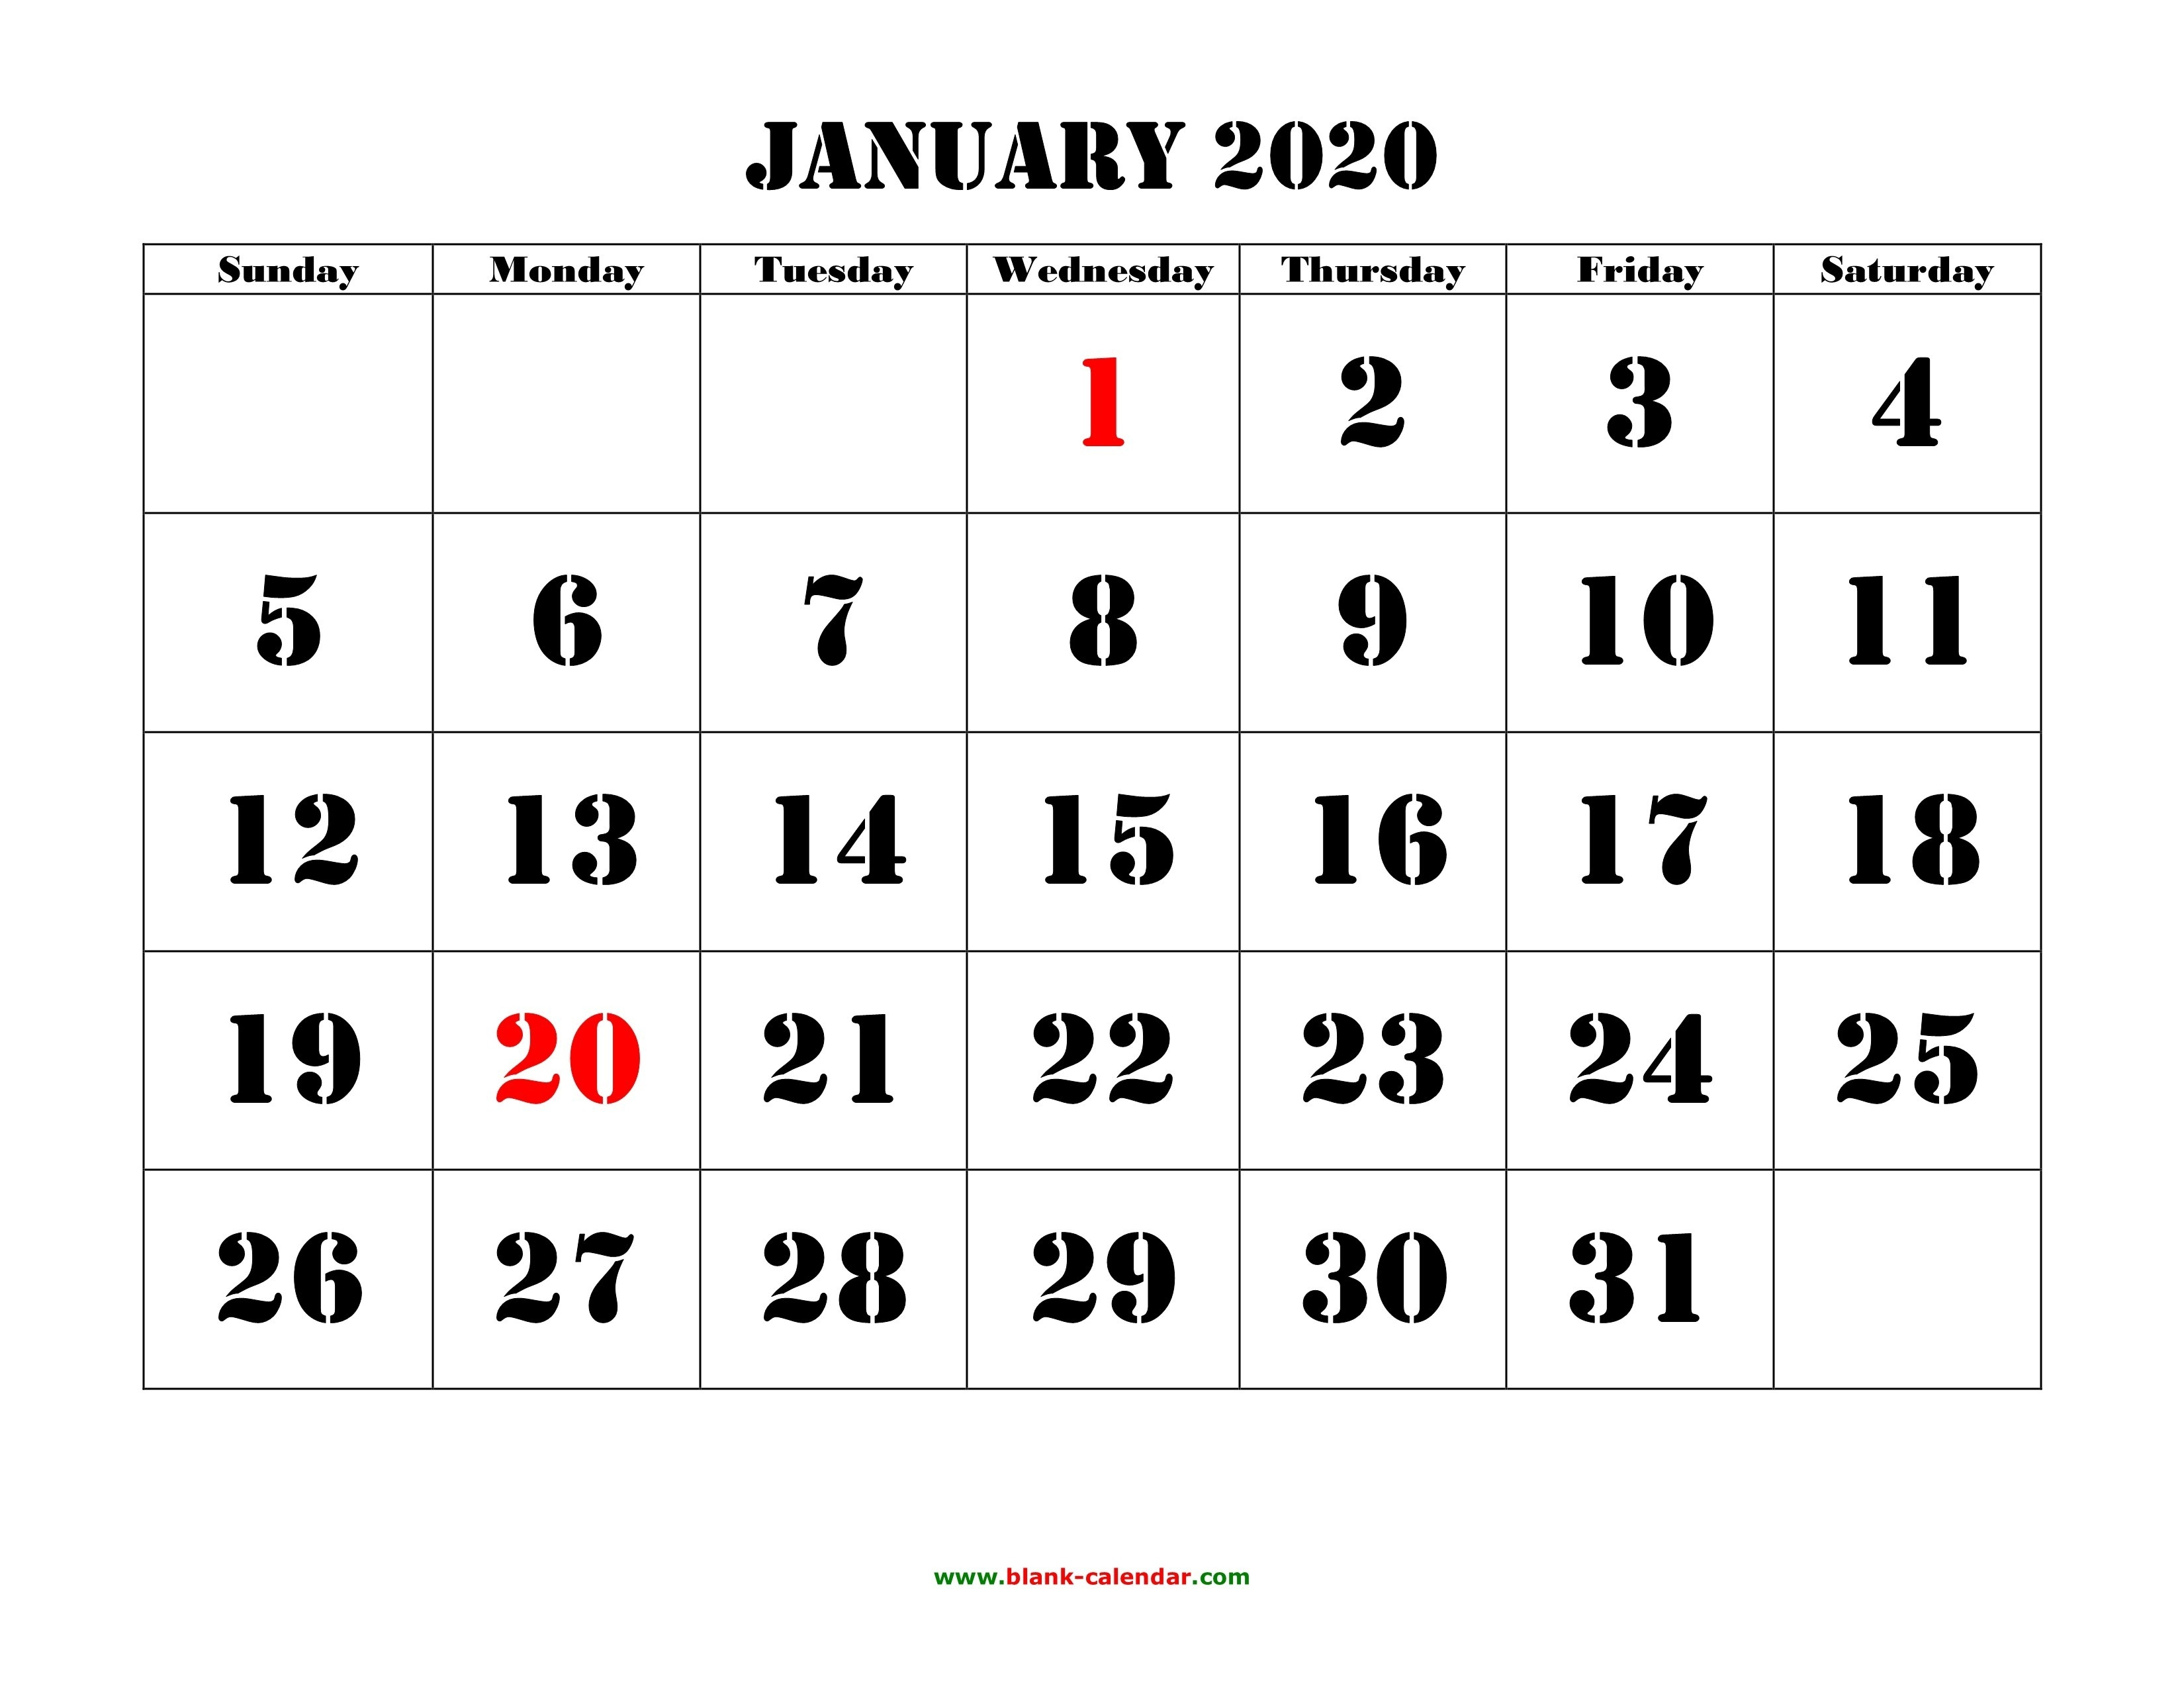 January 2020 Calendar - New Calendar Collection 2019-January 2020 Calendar Kalnirnay